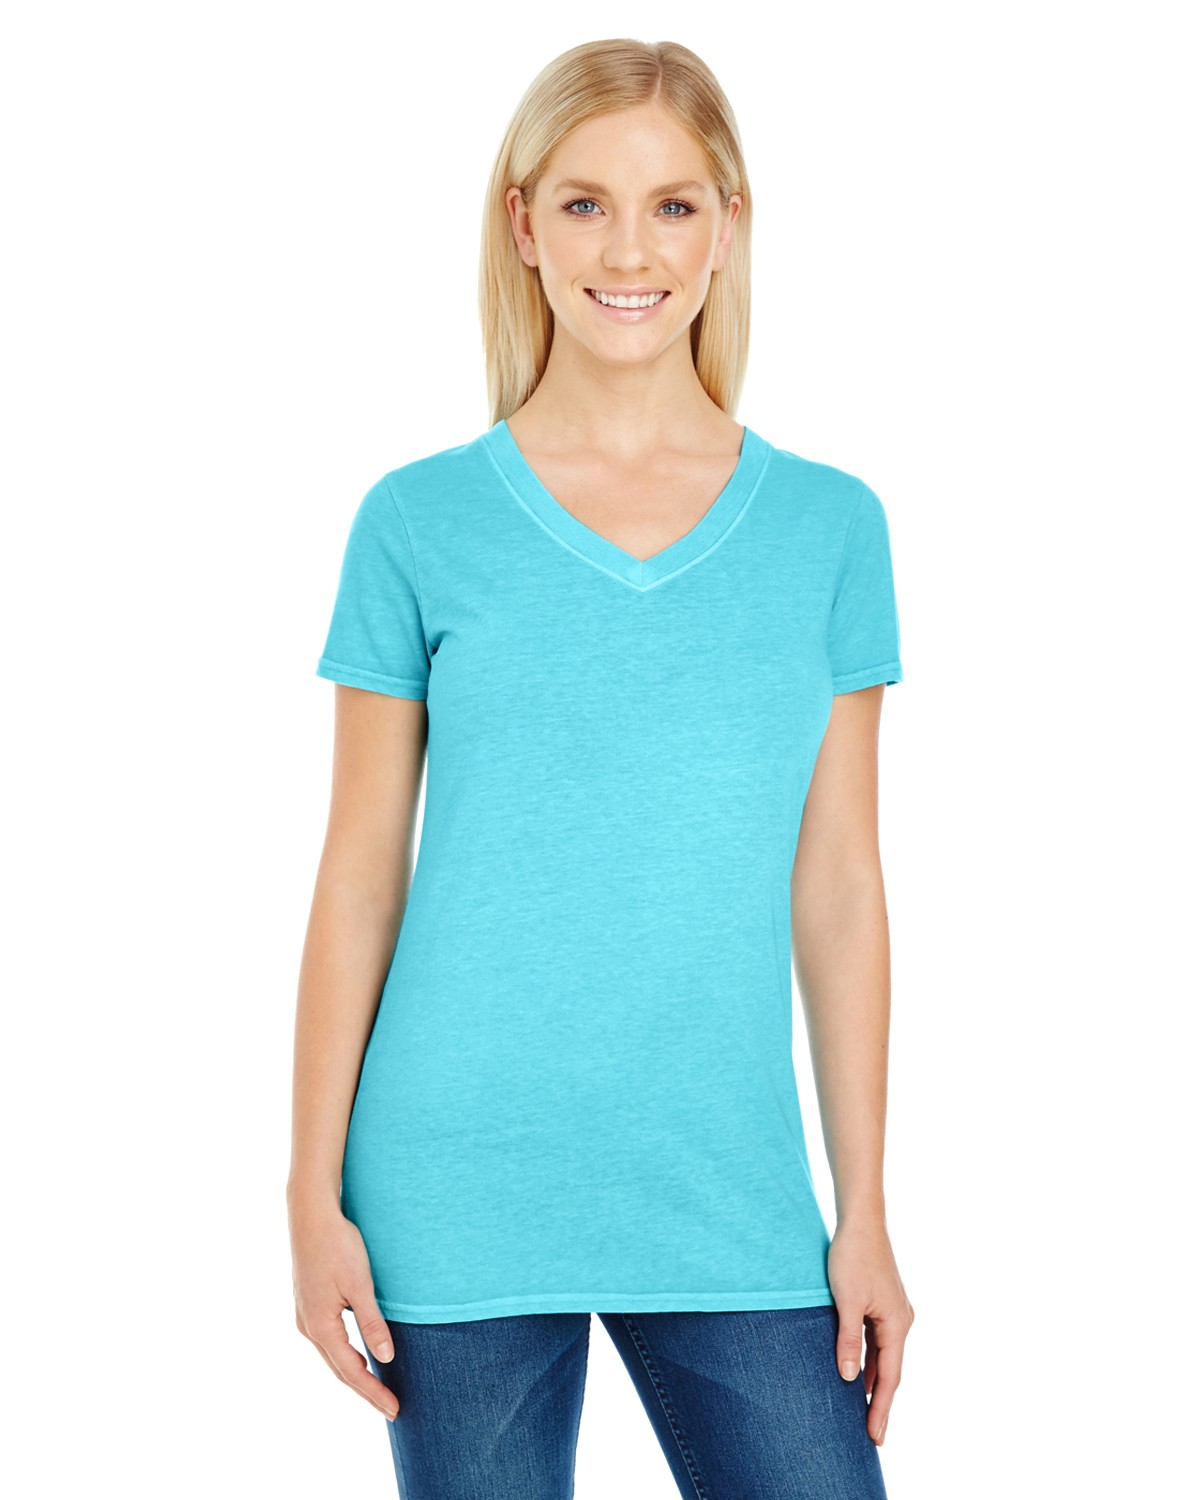 230B Threadfast Apparel LAGOON BLUE